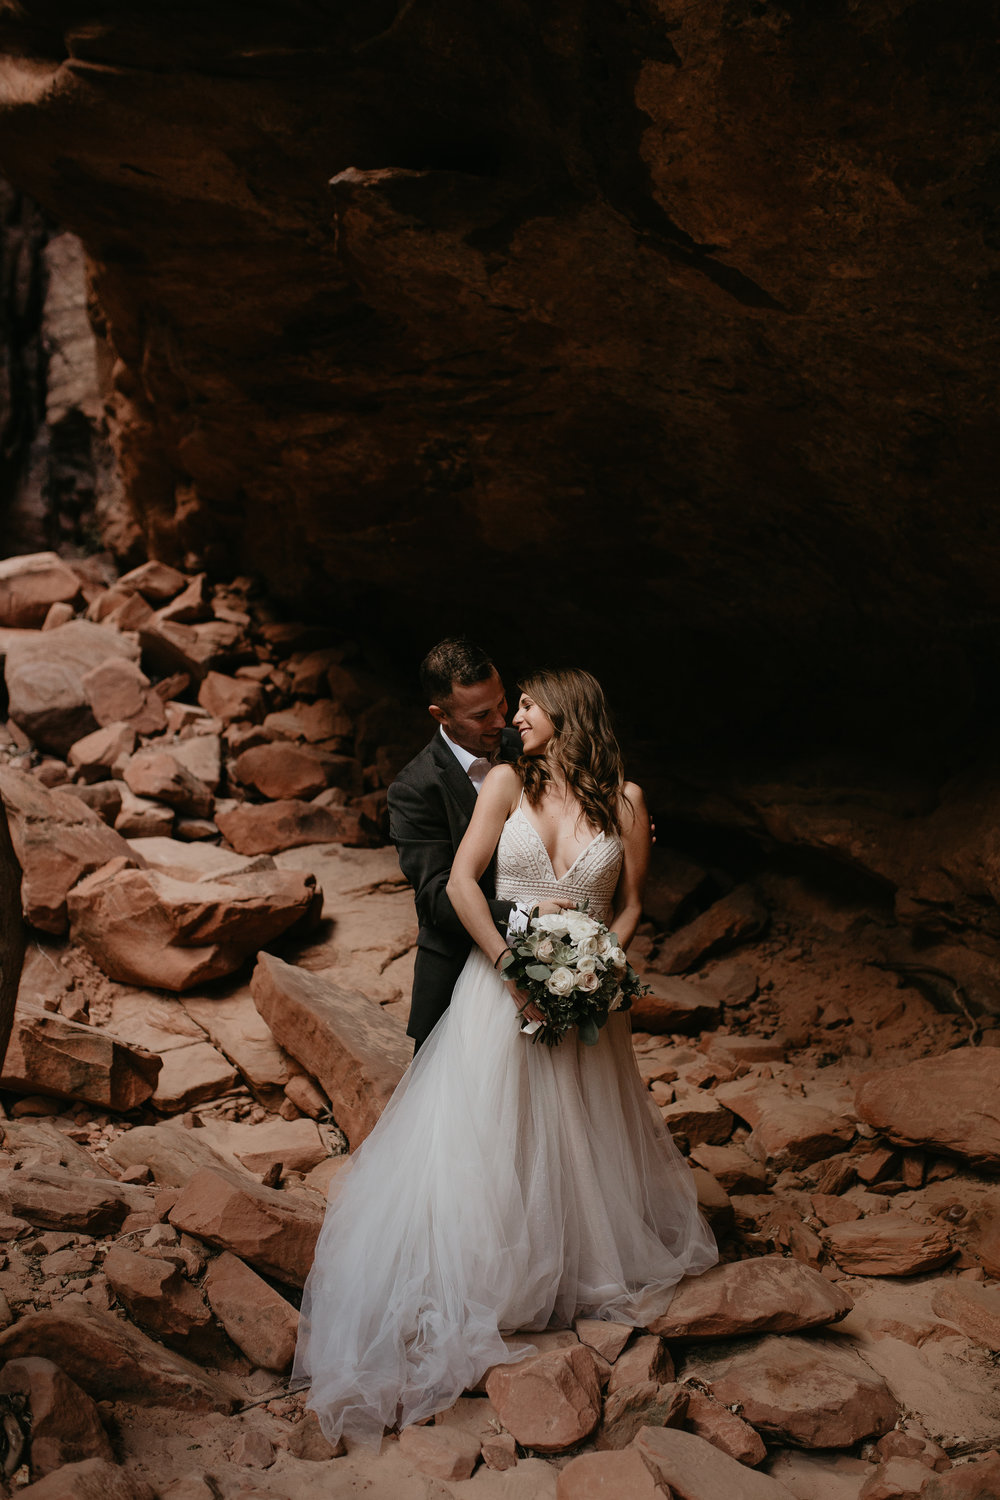 zion-national-park-elopement-photographer-adventure-adventurous-elopement-photographer-photography-in-national-parks-utah-red-rock-sunset-canyon-trail-destination-intimate-wedding-photos-12.jpg